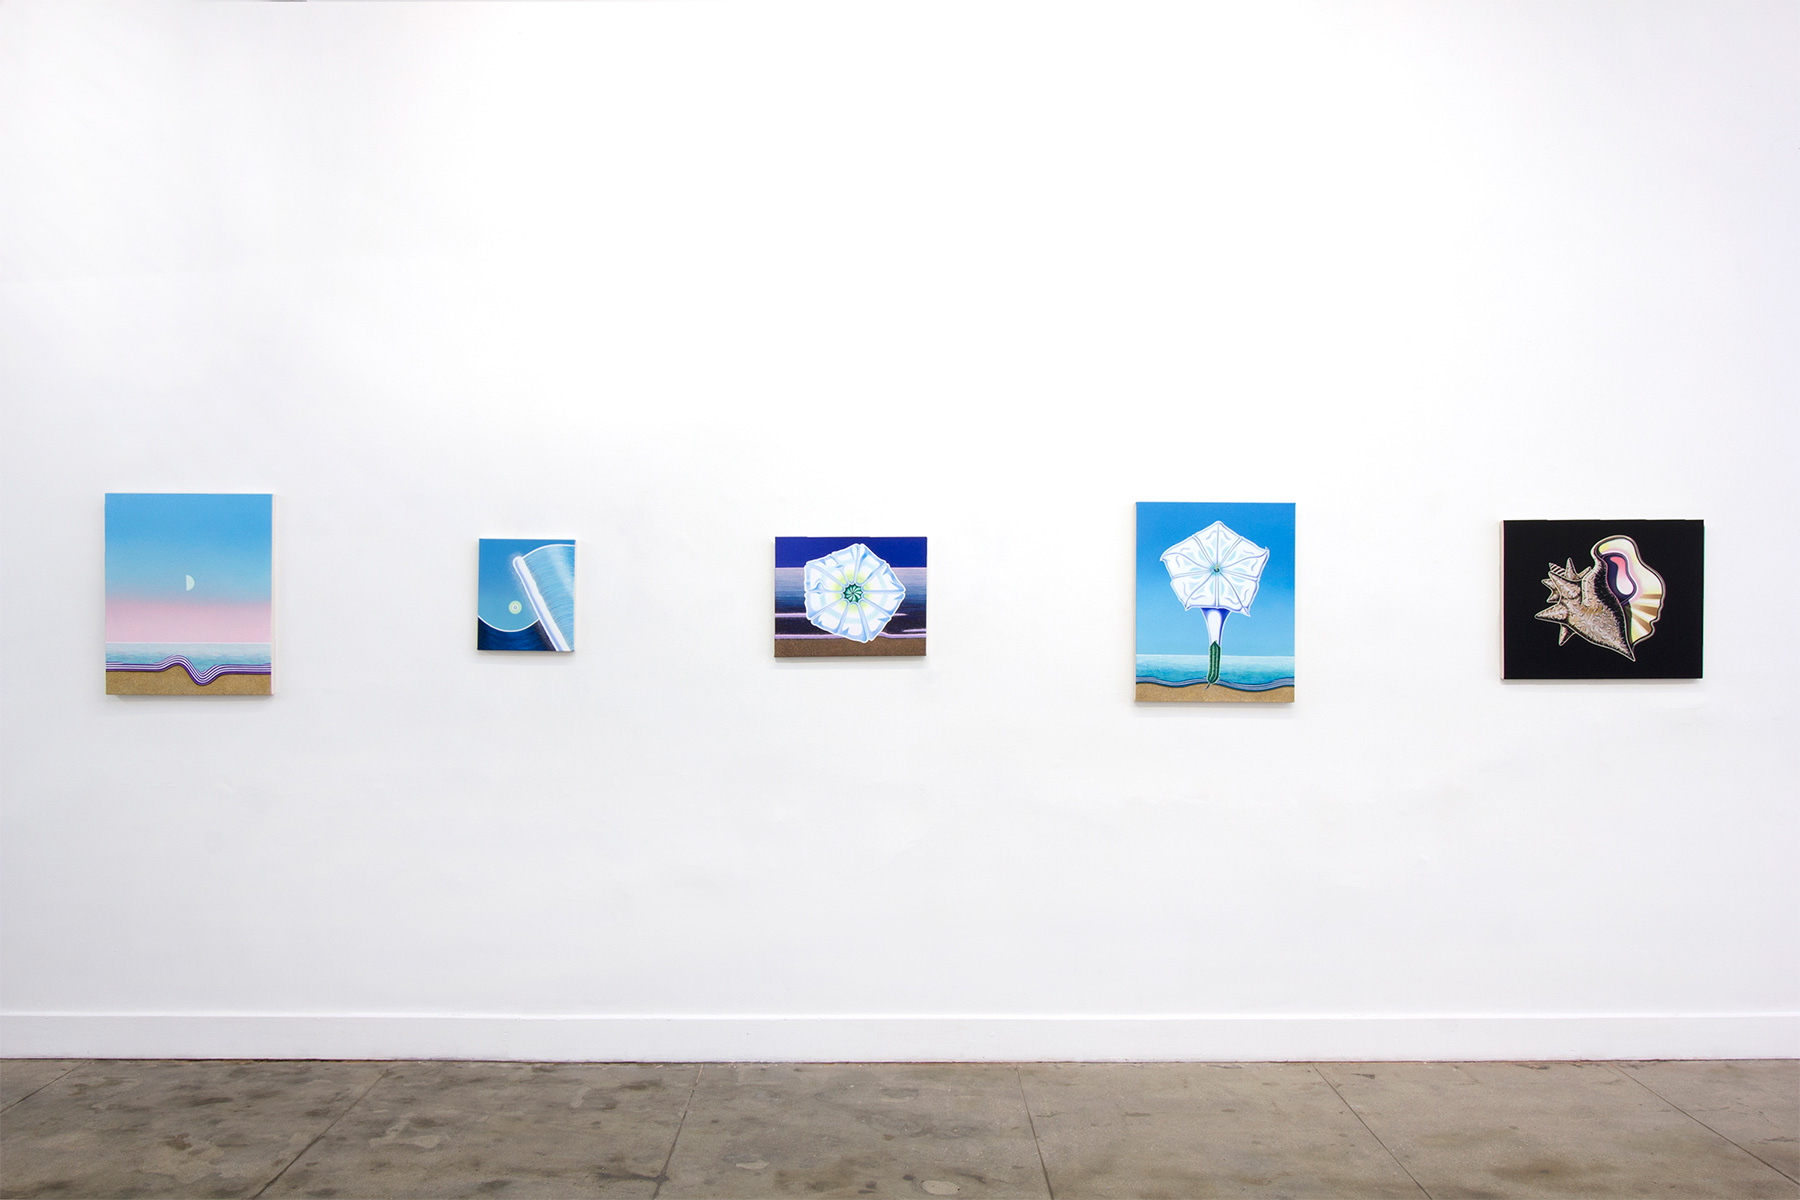 exhibition of paintings by artist matthew f fisher